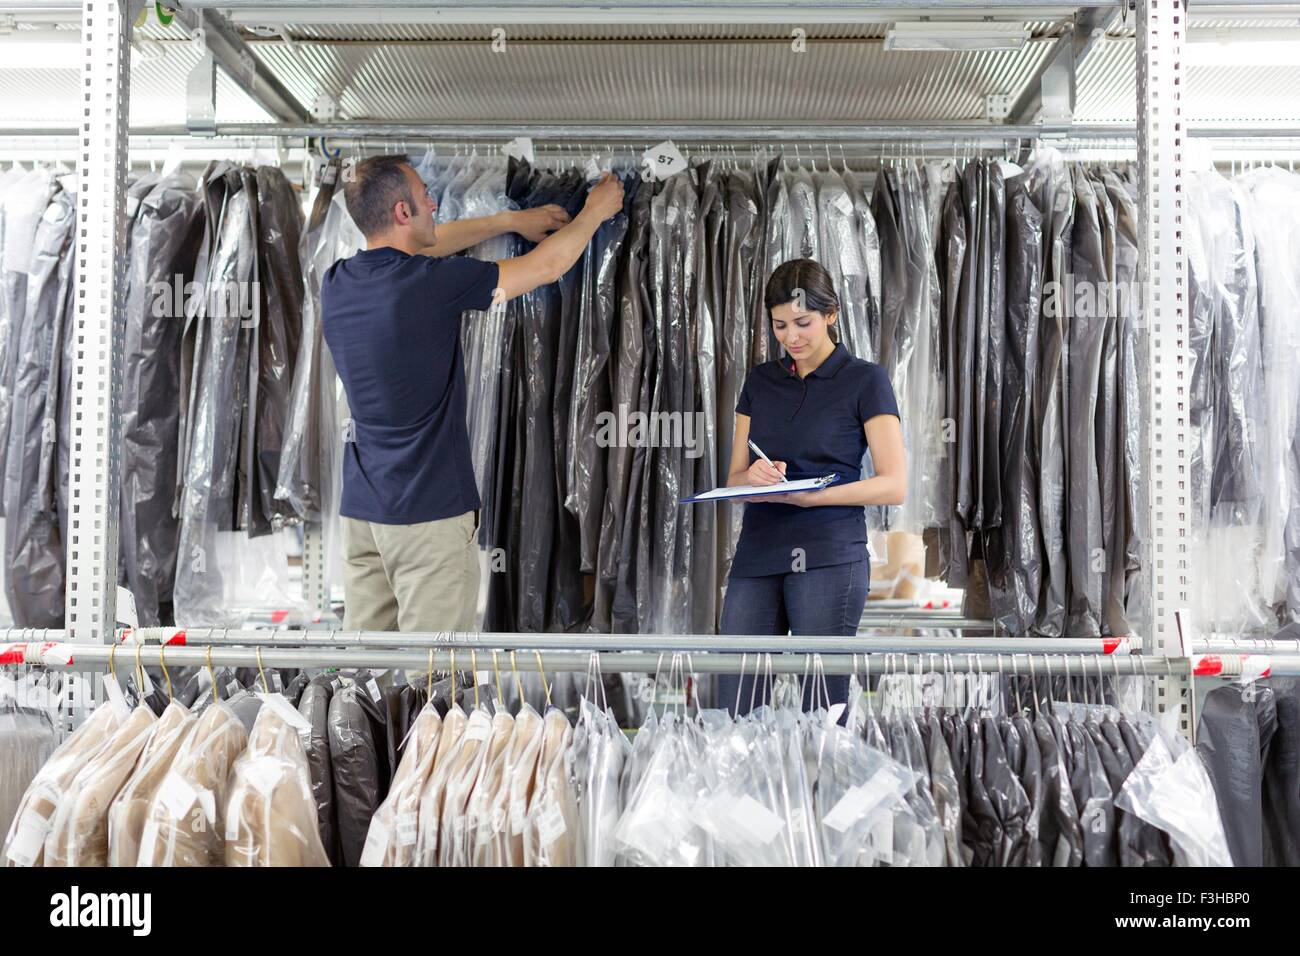 Two warehouse workers preparing garments in distribution warehouse - Stock Image